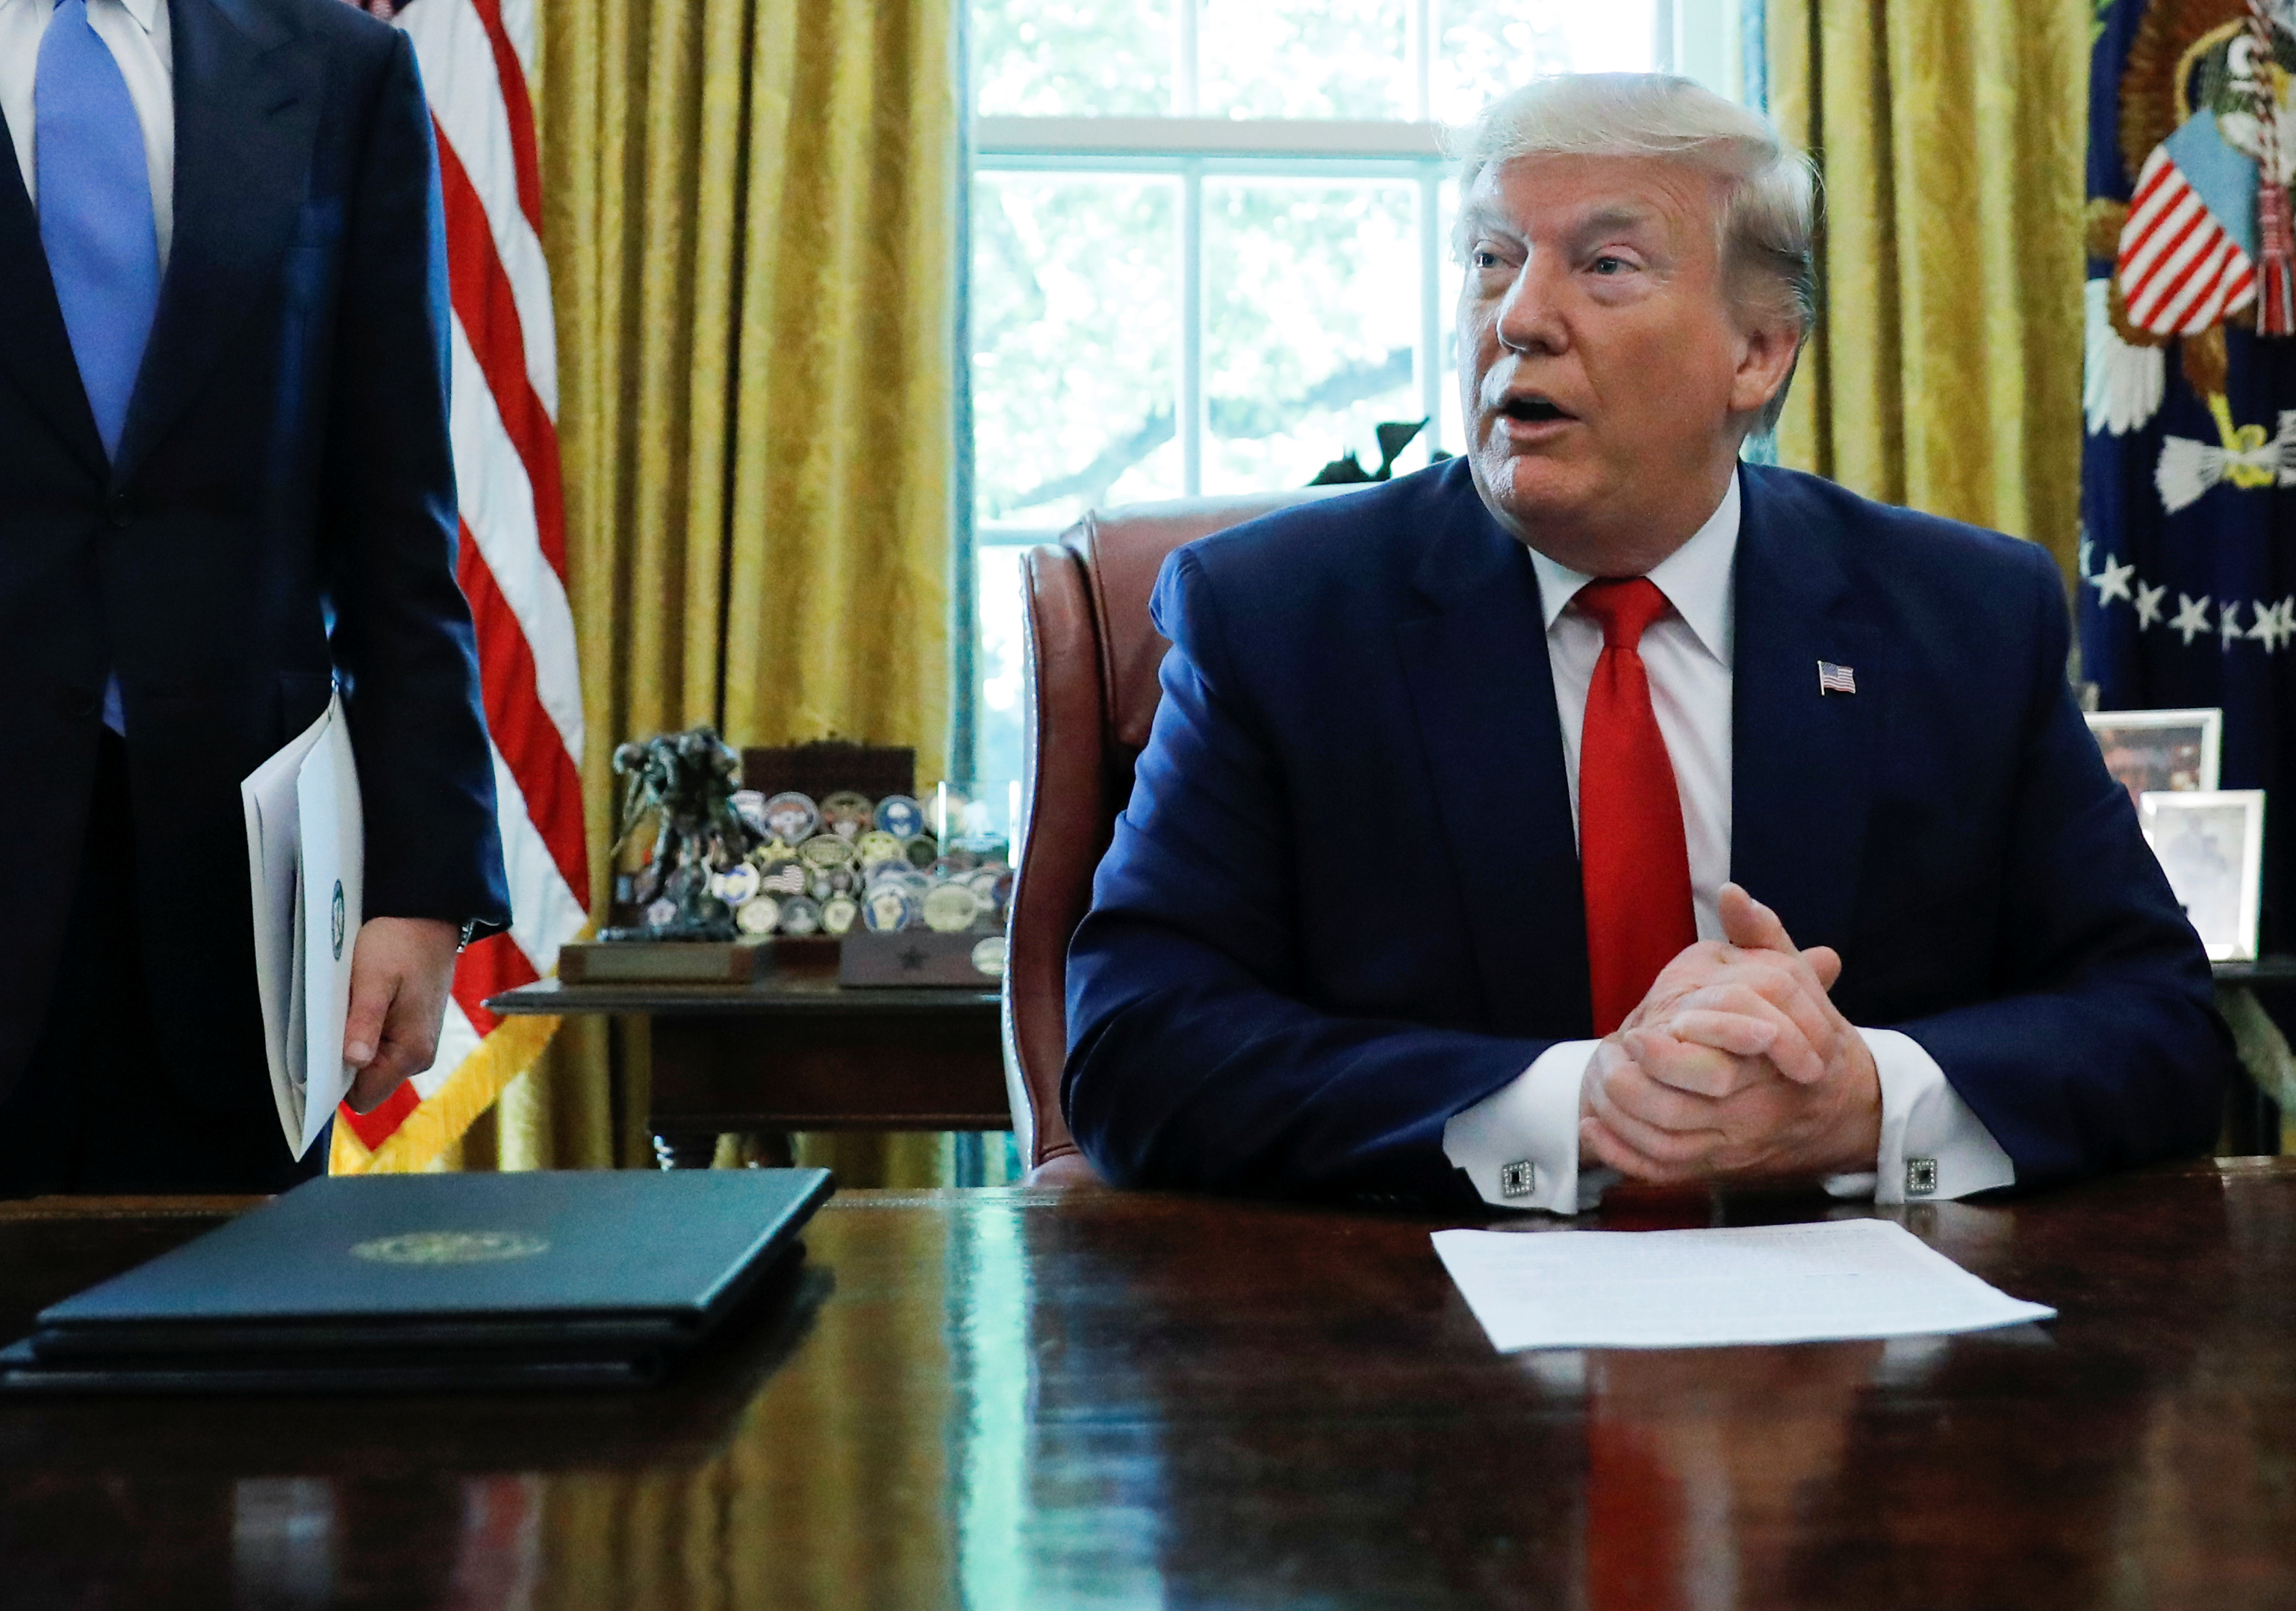 FILE PHOTO: U.S.  President Donald Trump talks about the United States imposing fresh sanctions on Iran before signing an executive order in the Oval Office of the White House in Washington, U.S., June 24, 2019. REUTERS/Carlos Barria